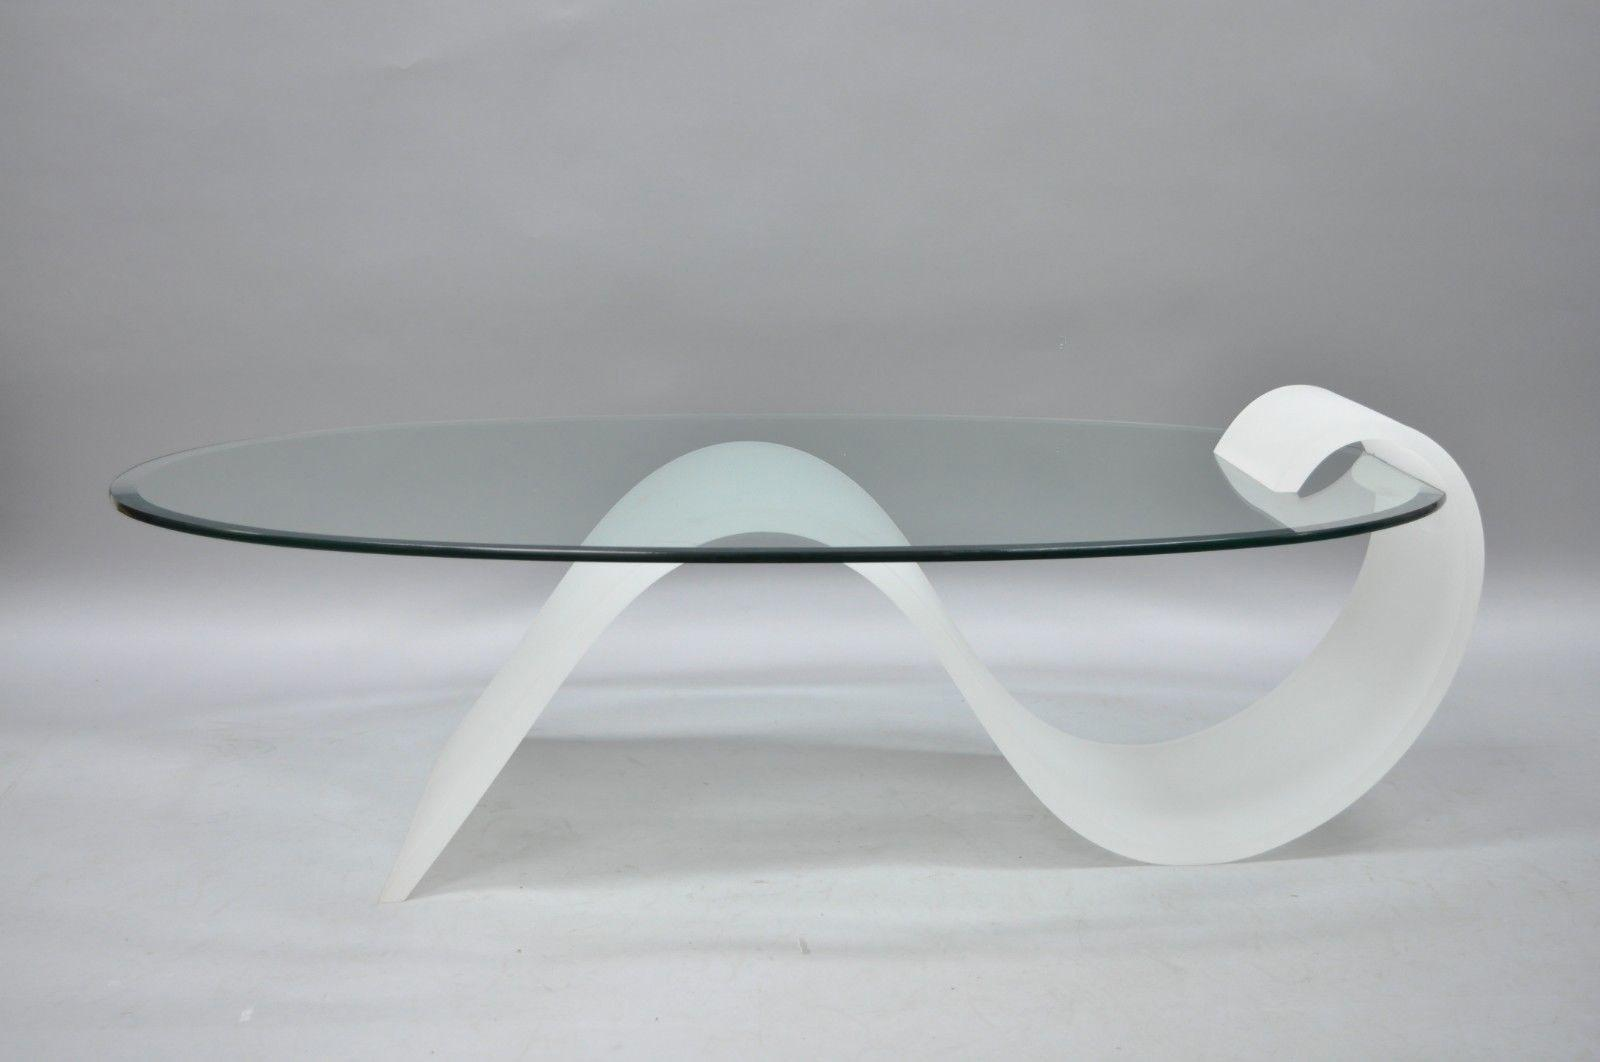 1970s mid century modern lucite and oval glass s shaped cantilever coffee table